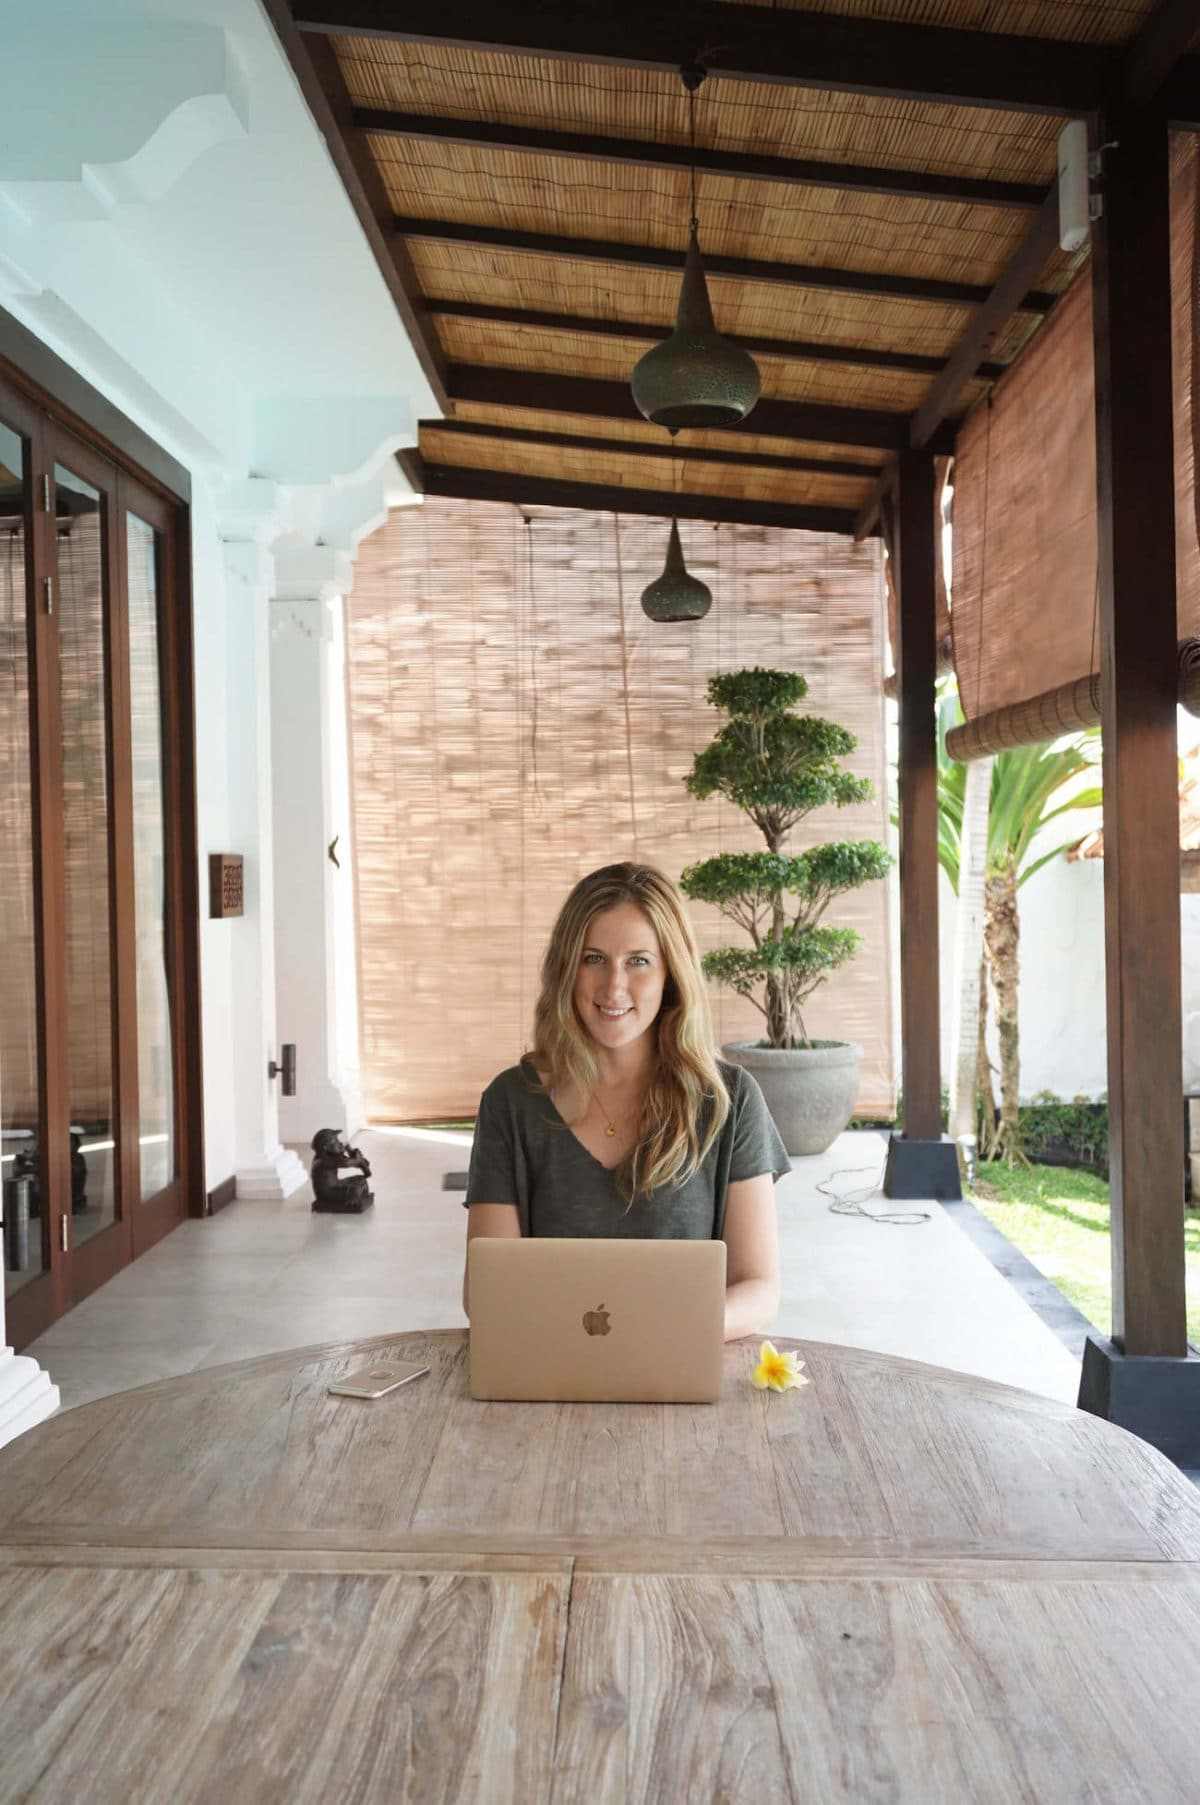 These productivity tips for digital nomads and bloggers will help you work less, so that you can enjoy the destinations you're visiting more.